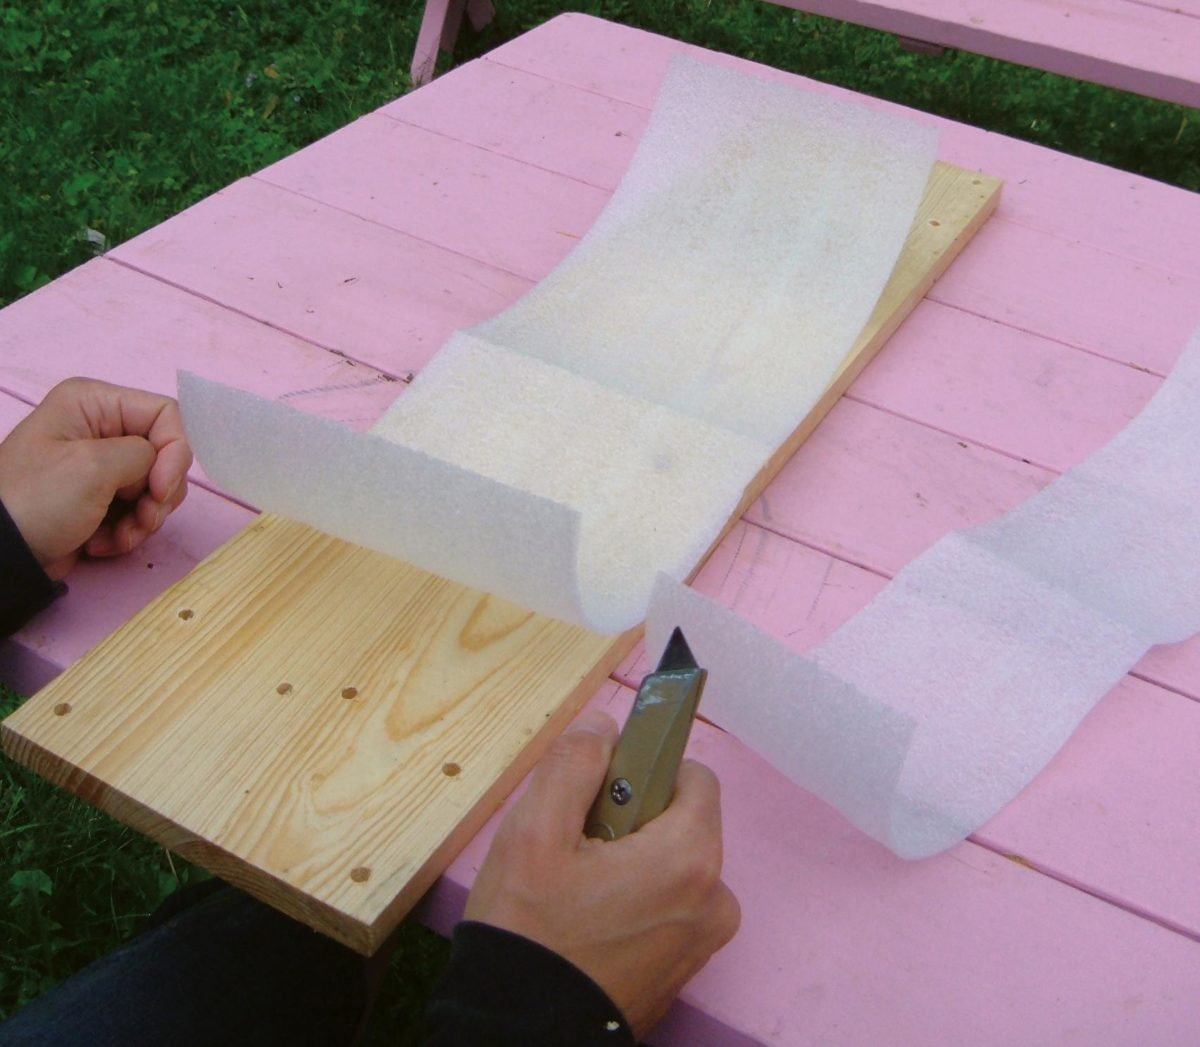 Backing material (closed-cell packing foam) being cut.